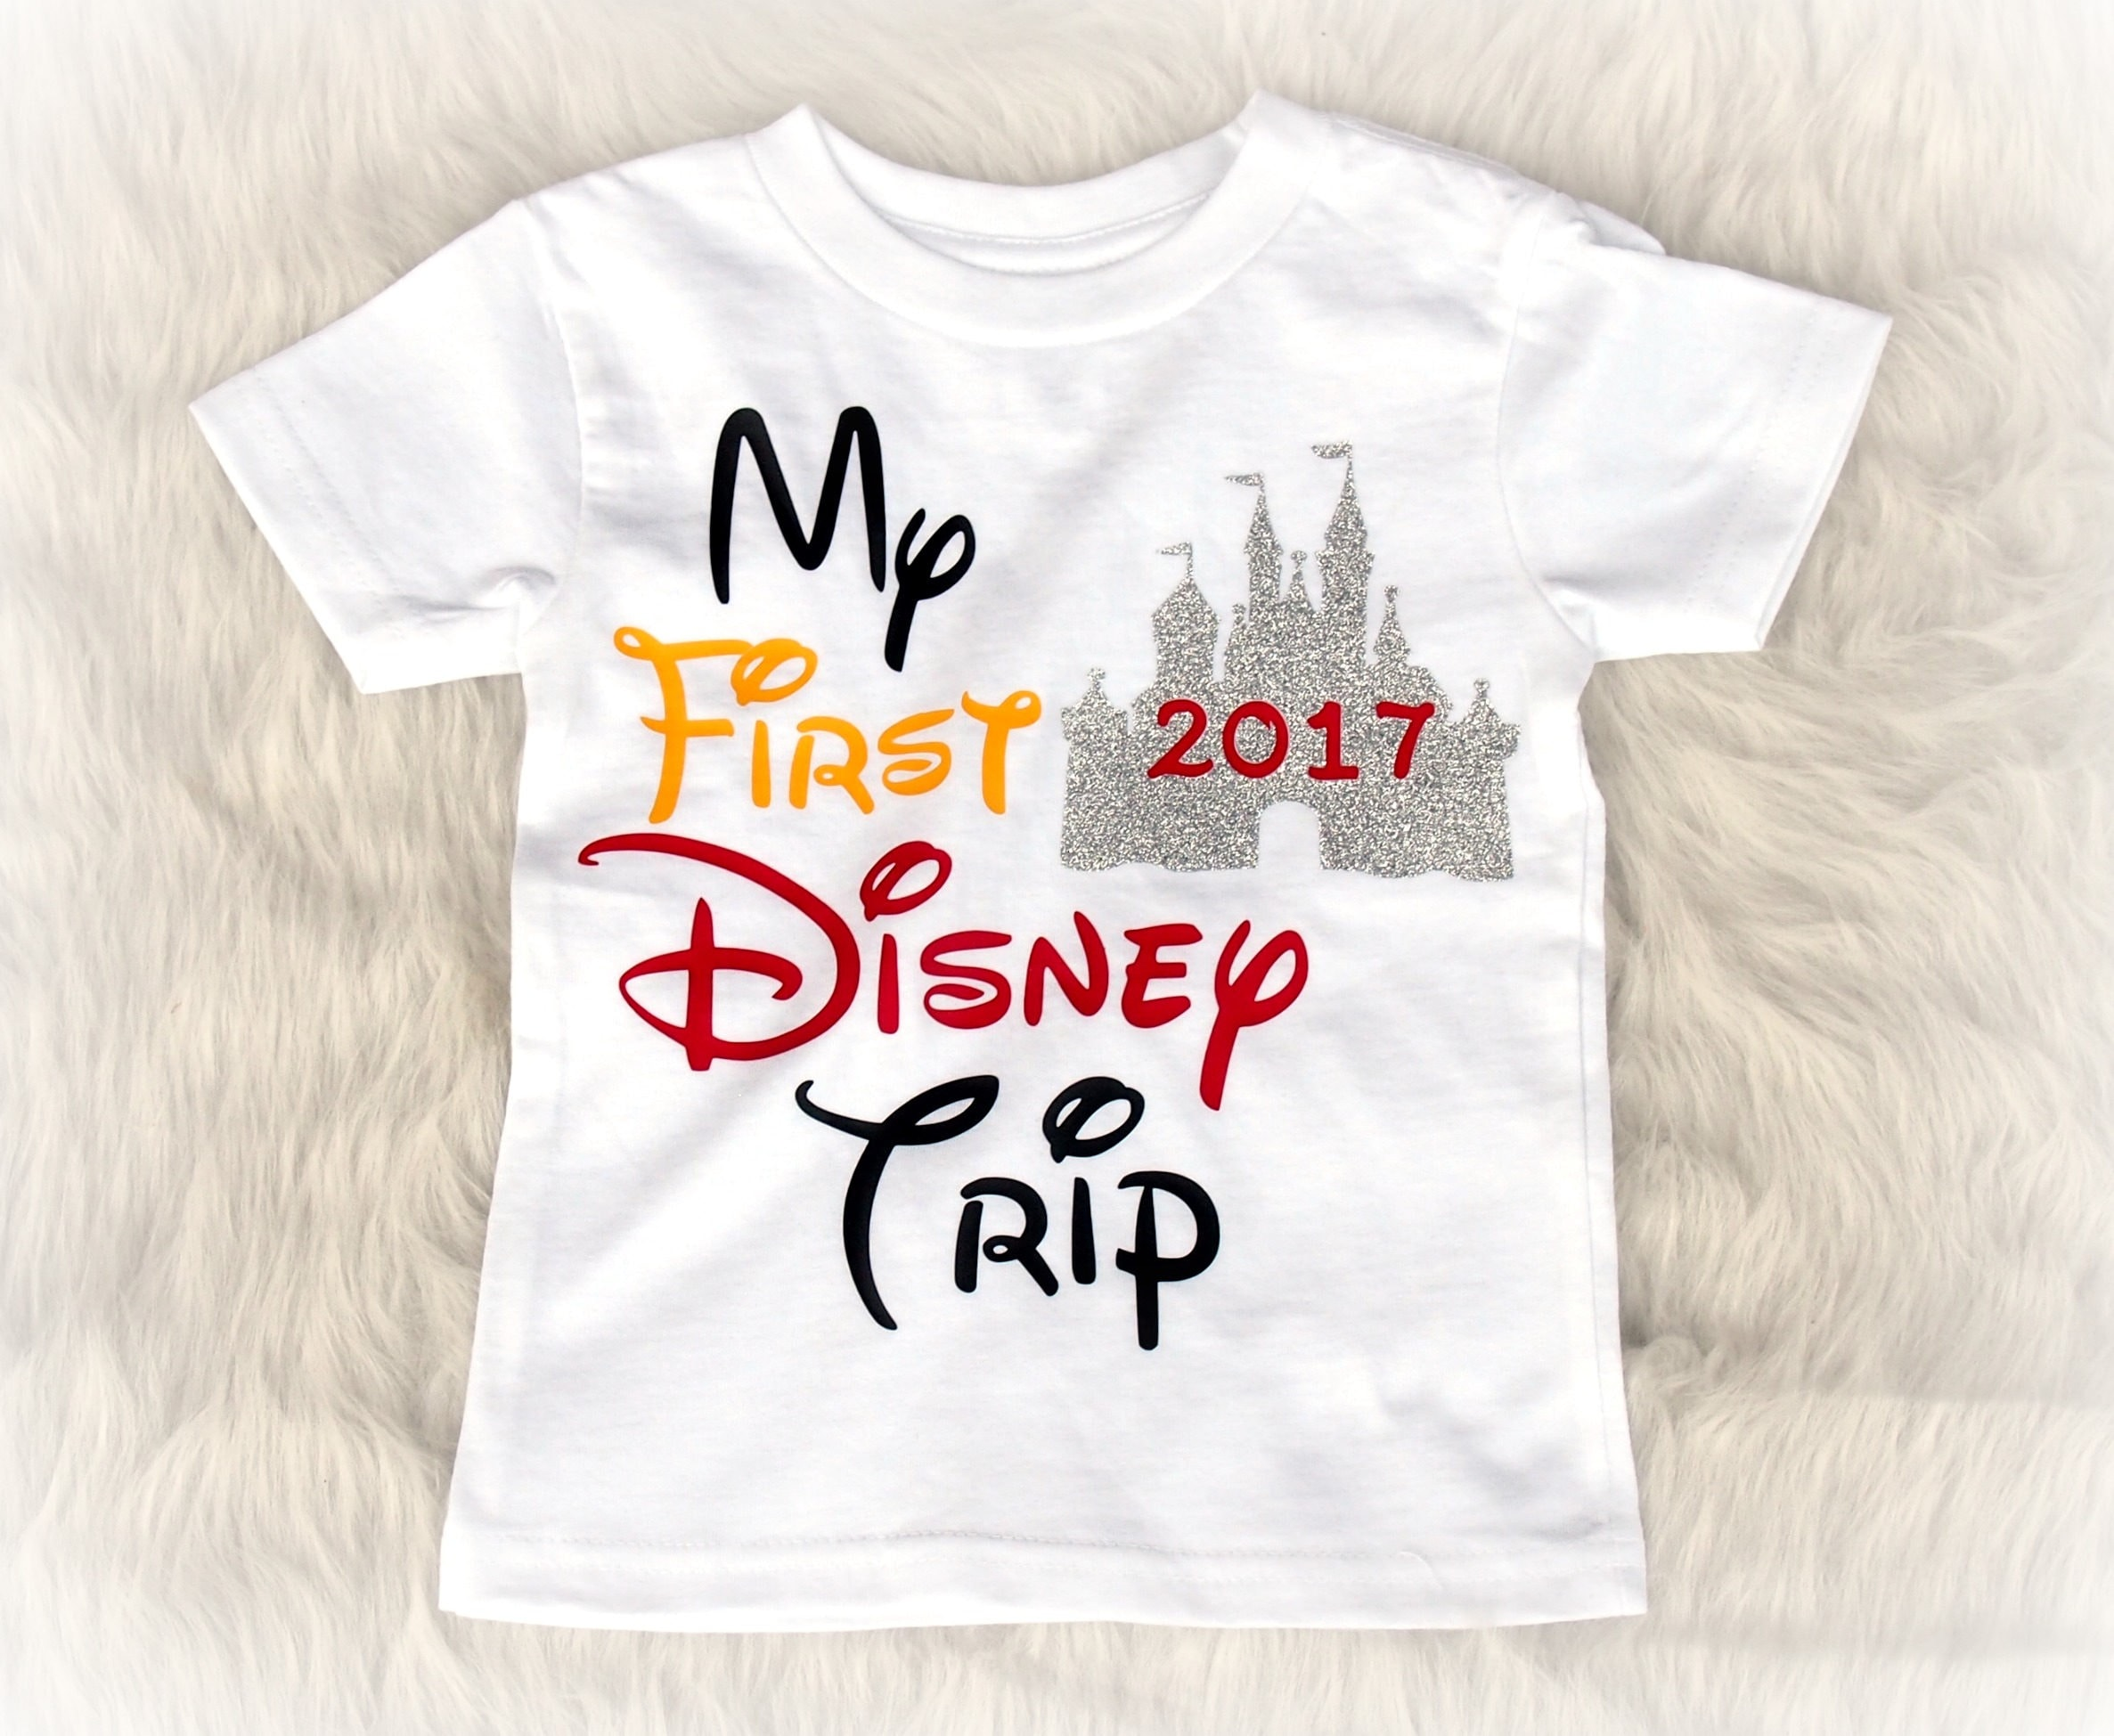 224c52919920d My First Disney Trip shirt - Disney Vacation shirt - Disney World tee -  First Disney trip - shirt for vacation - first trip to Disney